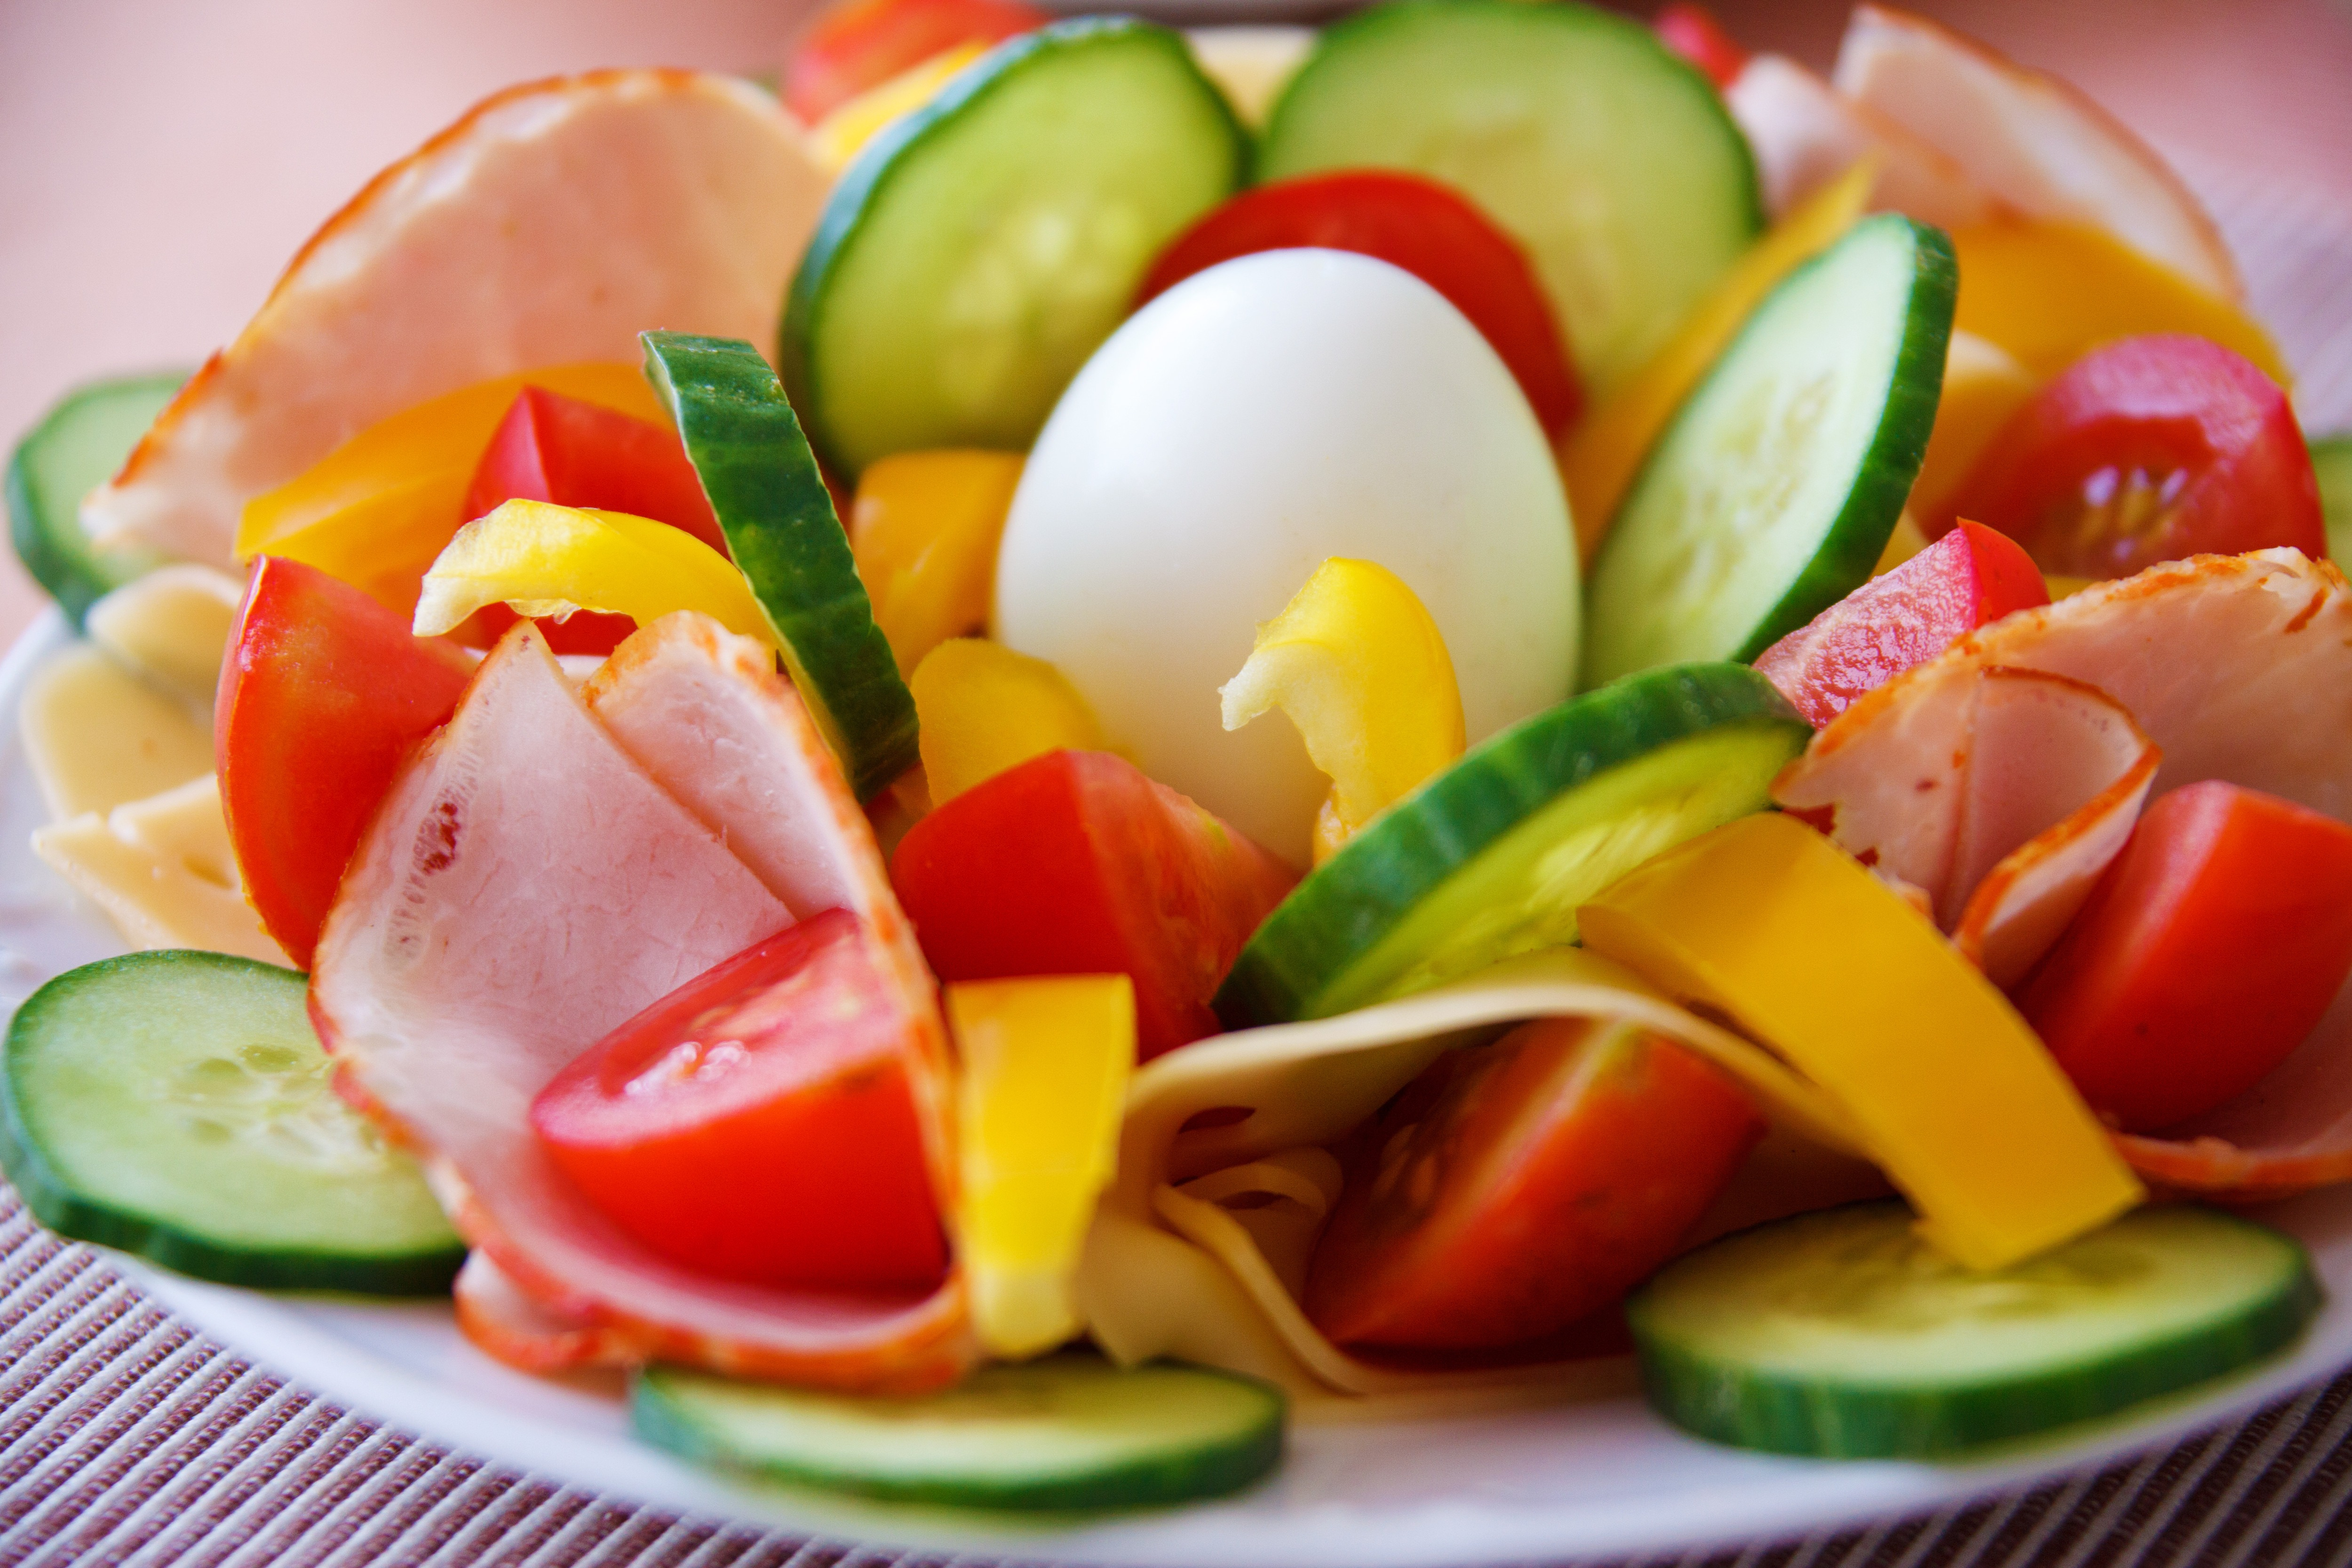 Healthy Foods Without Fiber